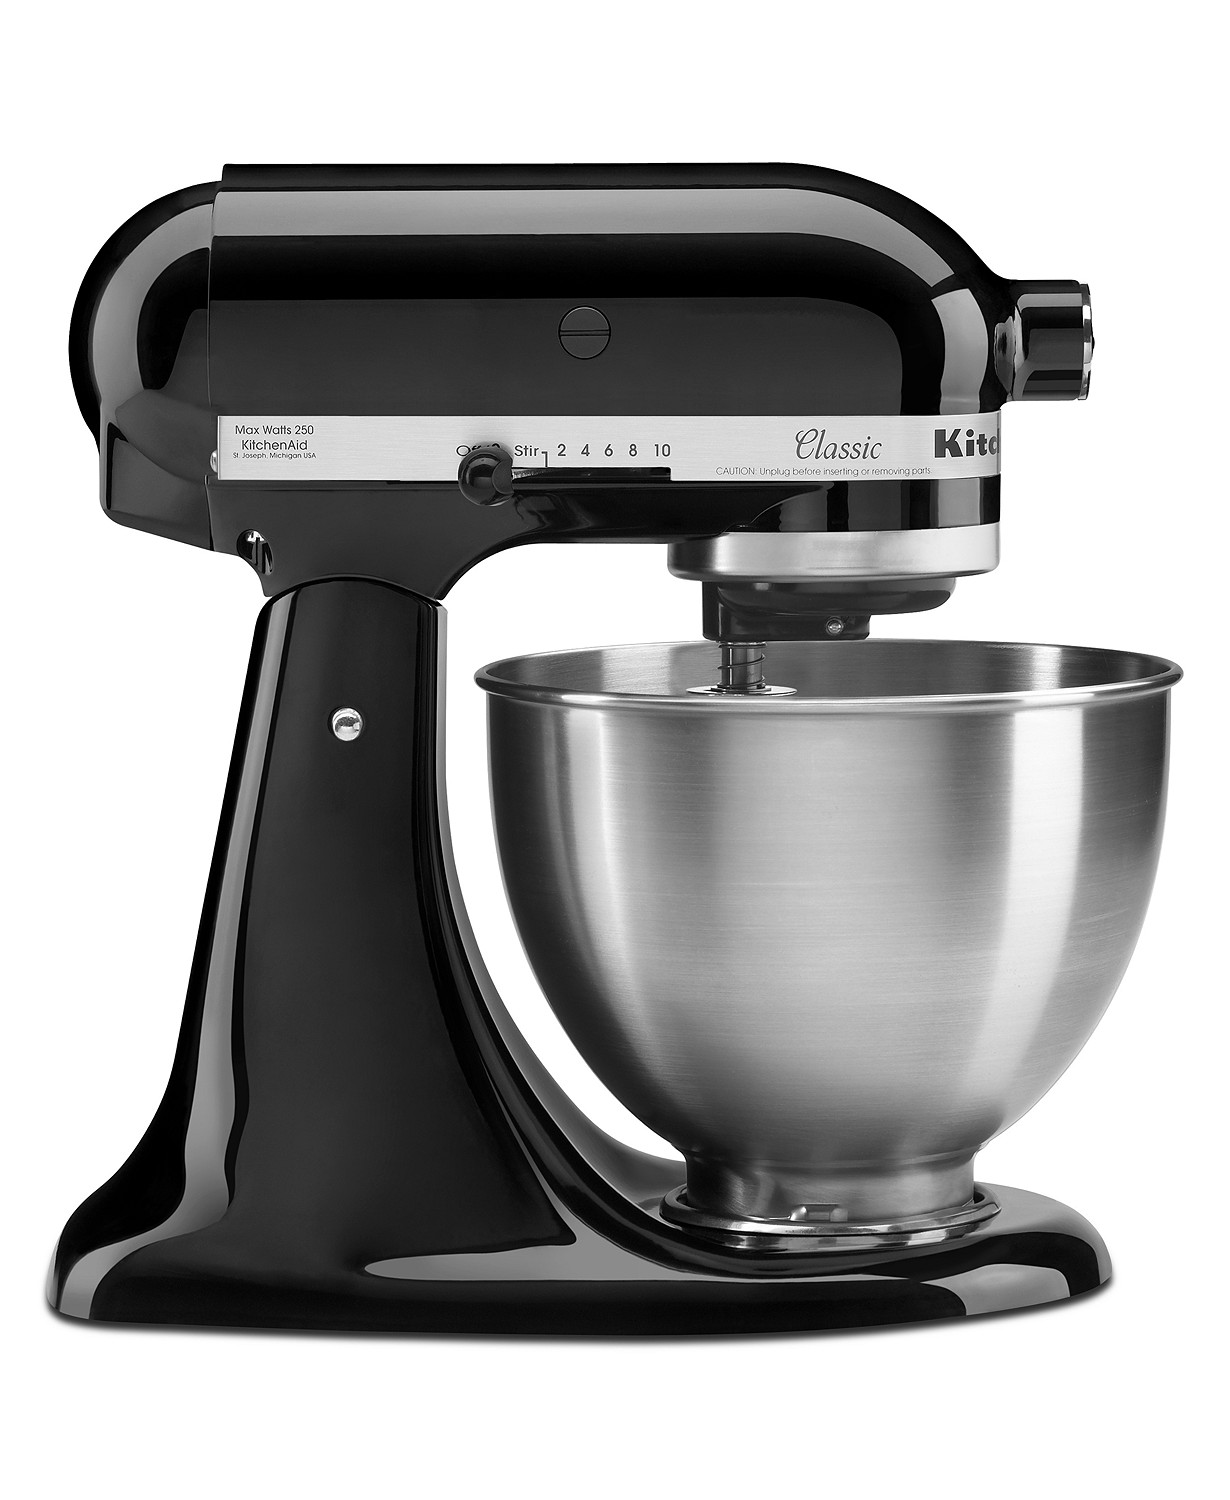 Macys Doorbusters LIVE NOW – Kitchen Aid Classic Stand Mixer 4.5 QT ONLY $179.99!!!